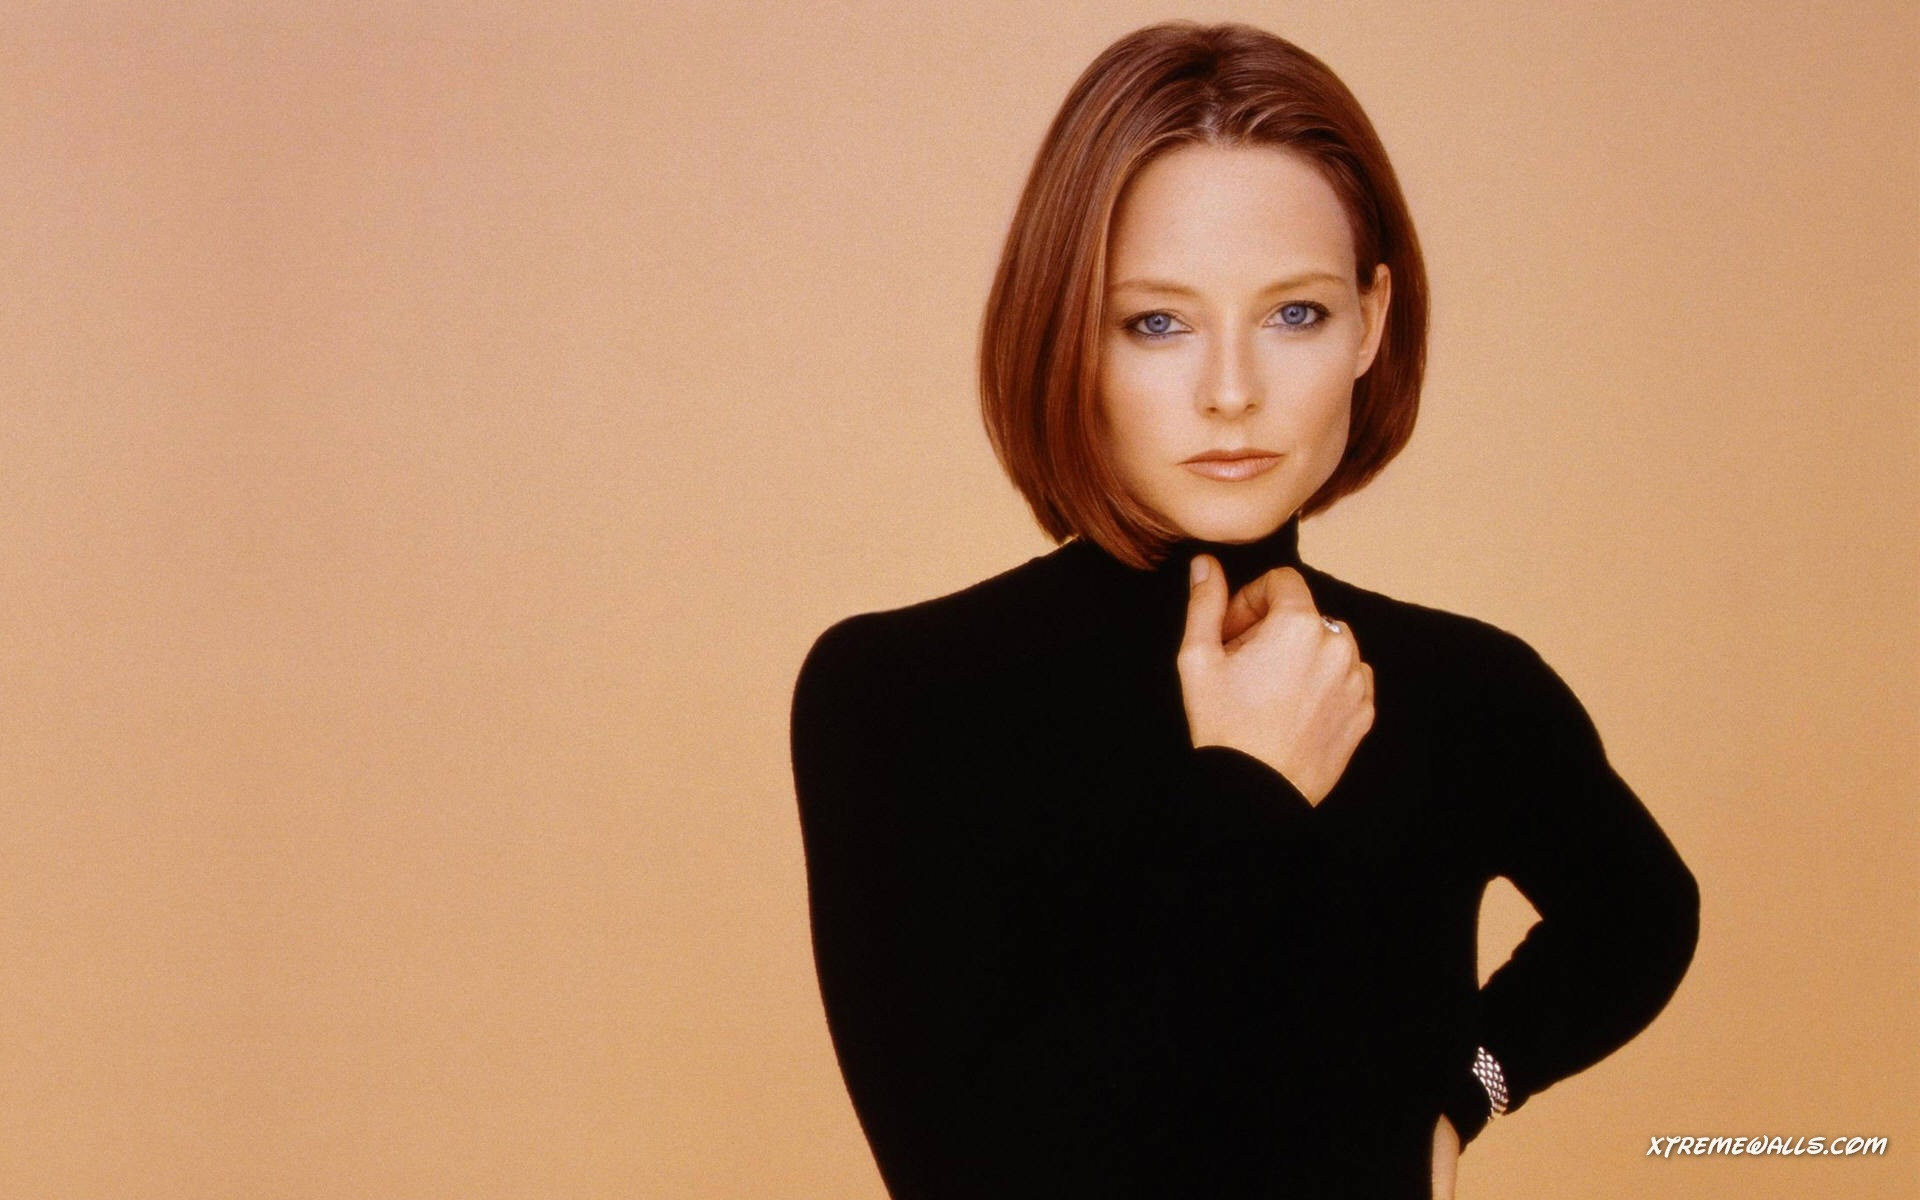 1920x1200 - Jodie Foster Wallpapers 25